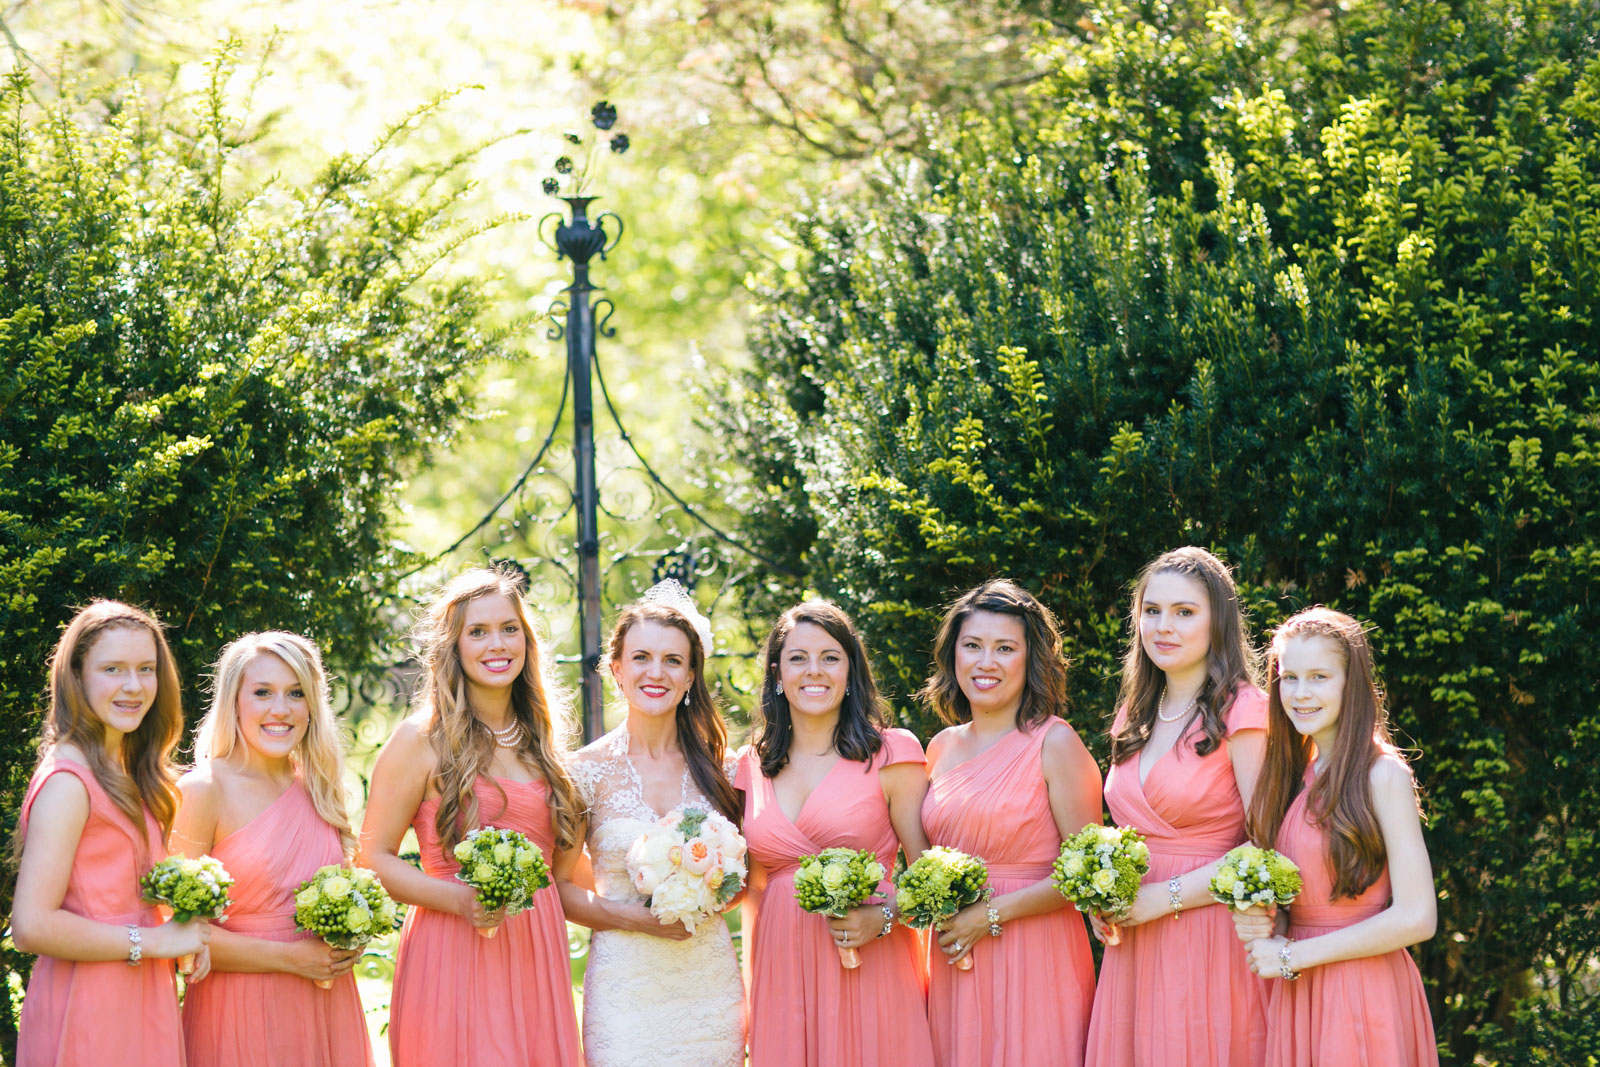 bridal party portraits at Mass Audubon Wildlife Sanctuary summer wedding with soft natural light